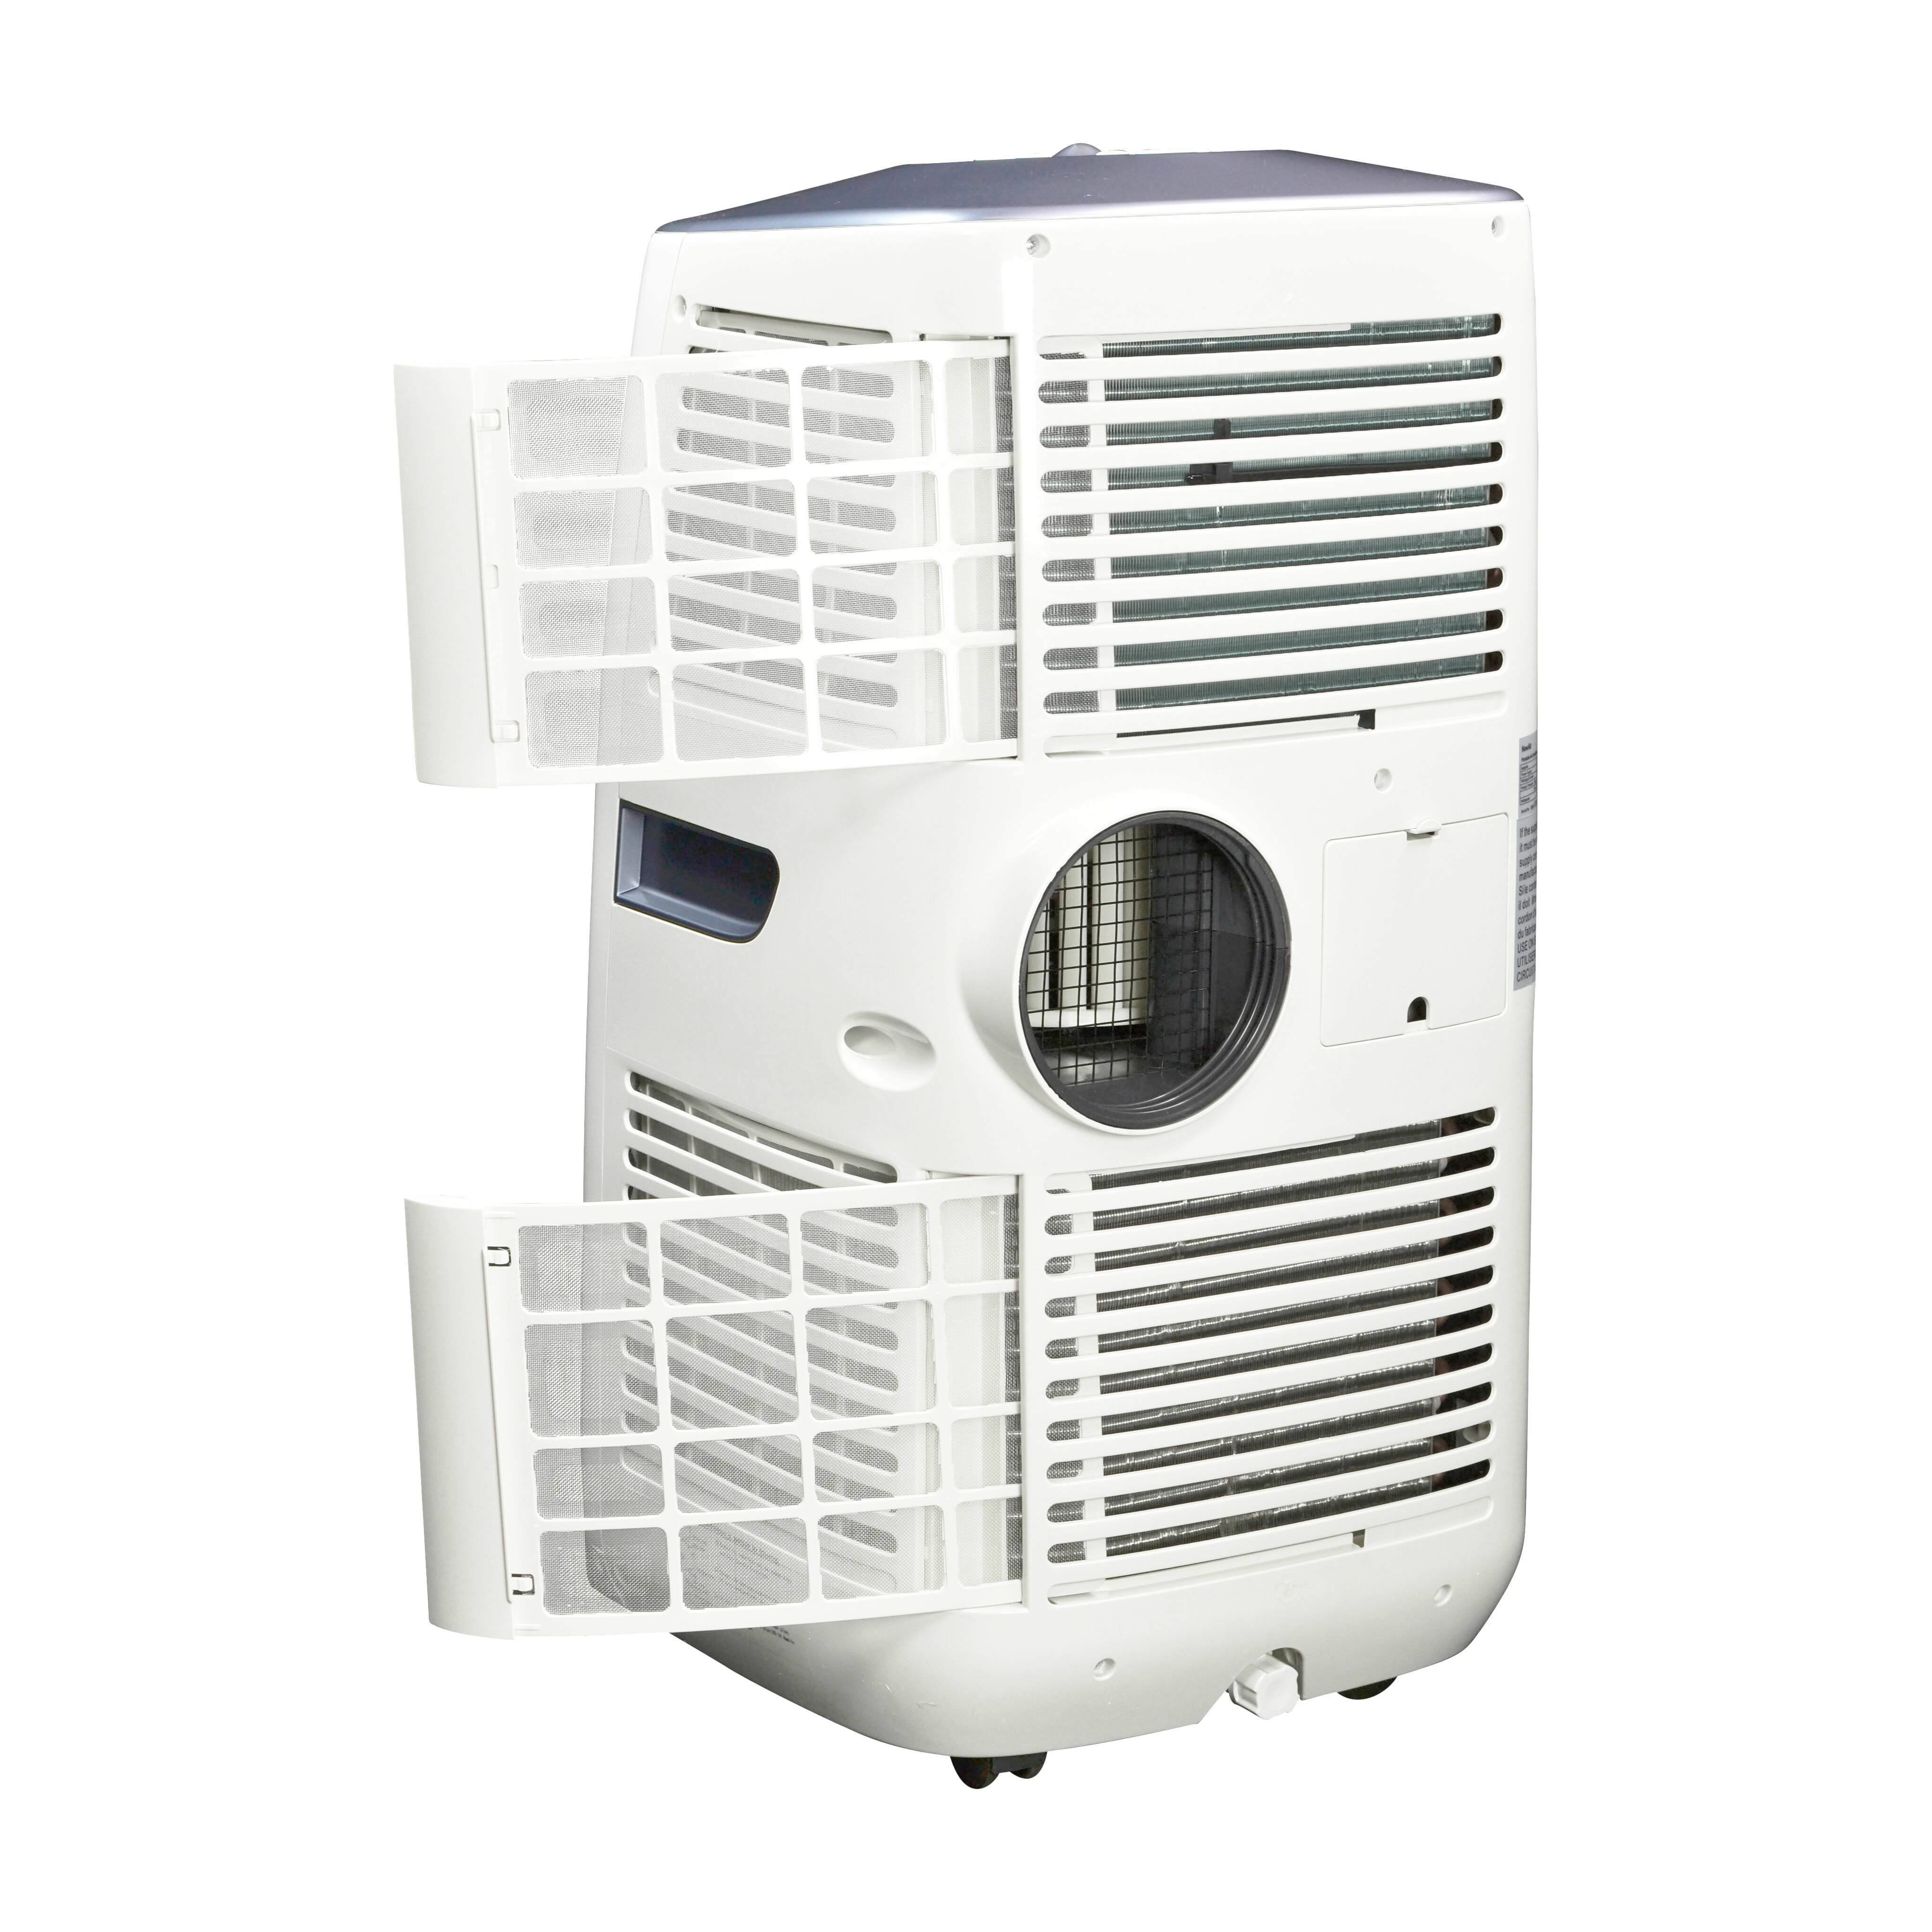 #5A5D71 NewAir Portable Air Conditioner With Remote & Reviews  Most Recent 13510 Portable Air Conditioner Ratings image with 4088x4088 px on helpvideos.info - Air Conditioners, Air Coolers and more